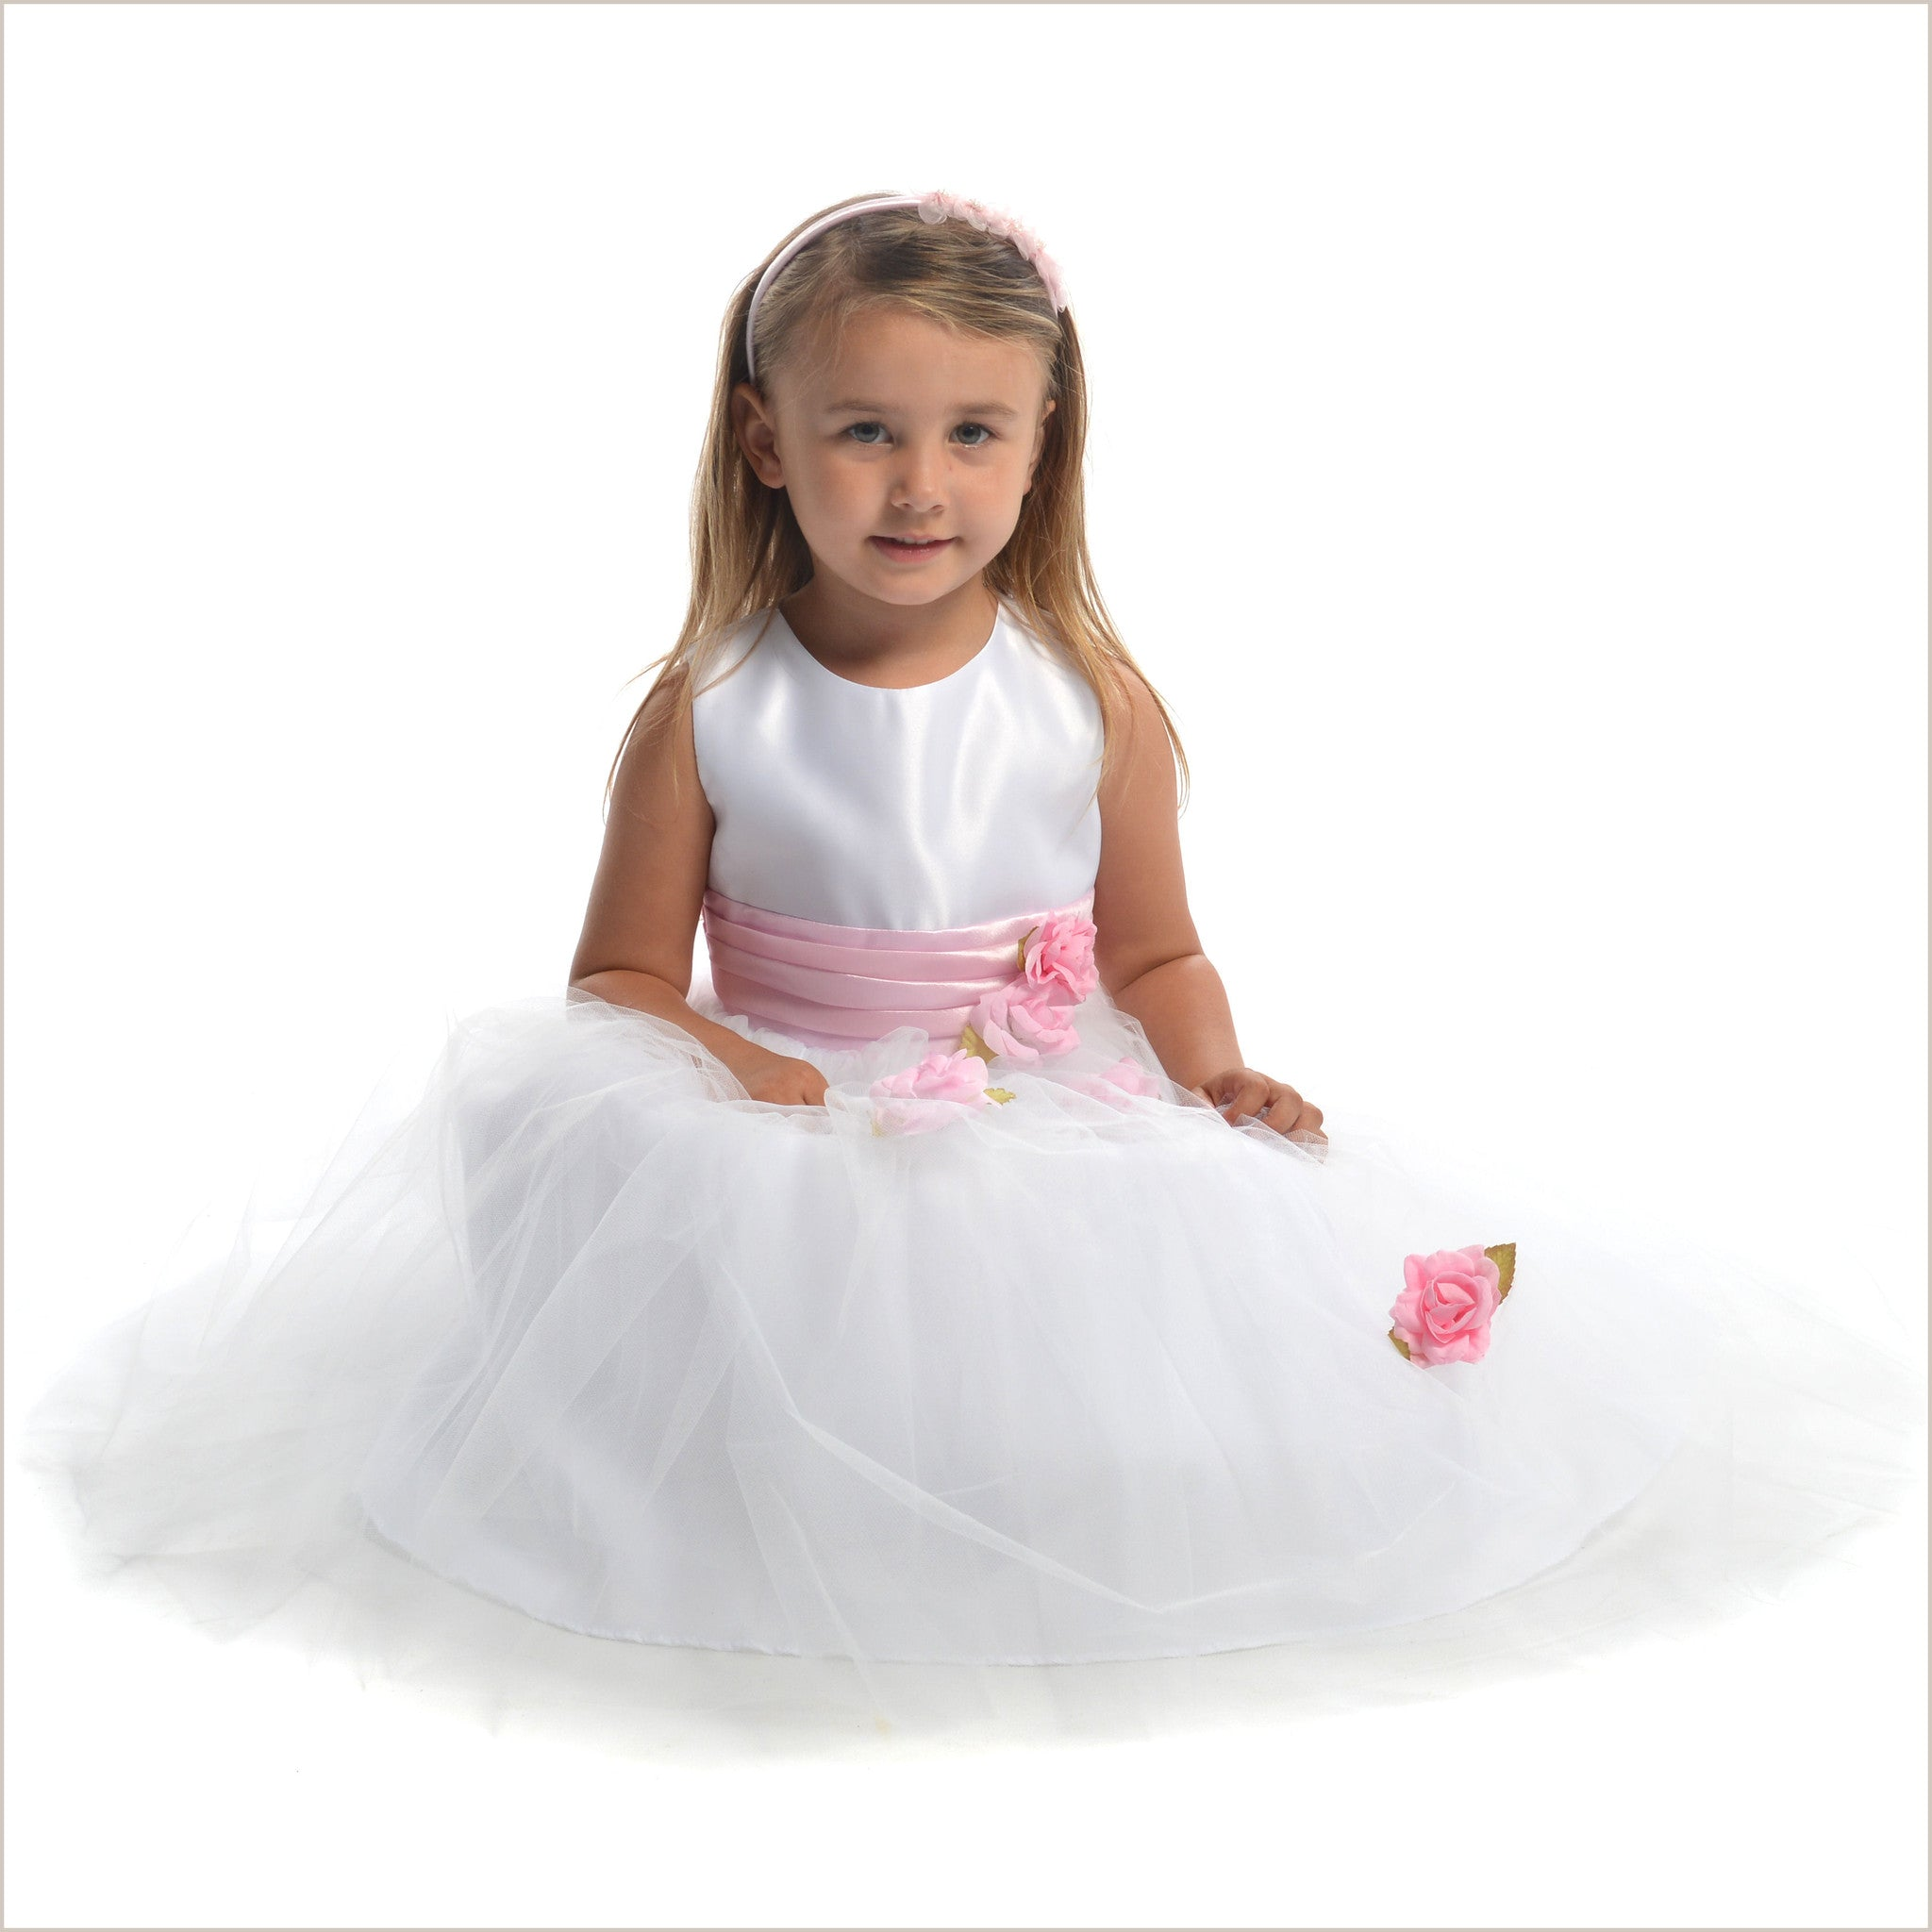 Heather White Tulle Flower Girl Dress With Pink Roses 4y Last One